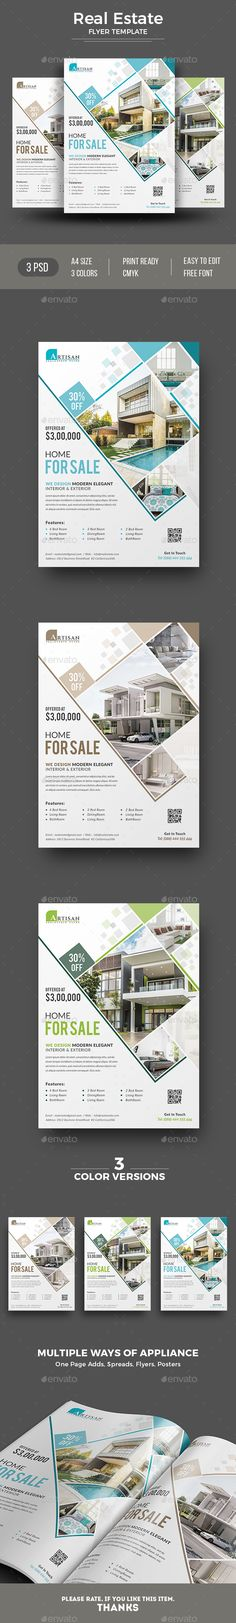 #Real Estate #Flyer - #Corporate Flyers Download here:  https://graphicriver.net/item/real-estate-flyer/20446394?ref=alena994